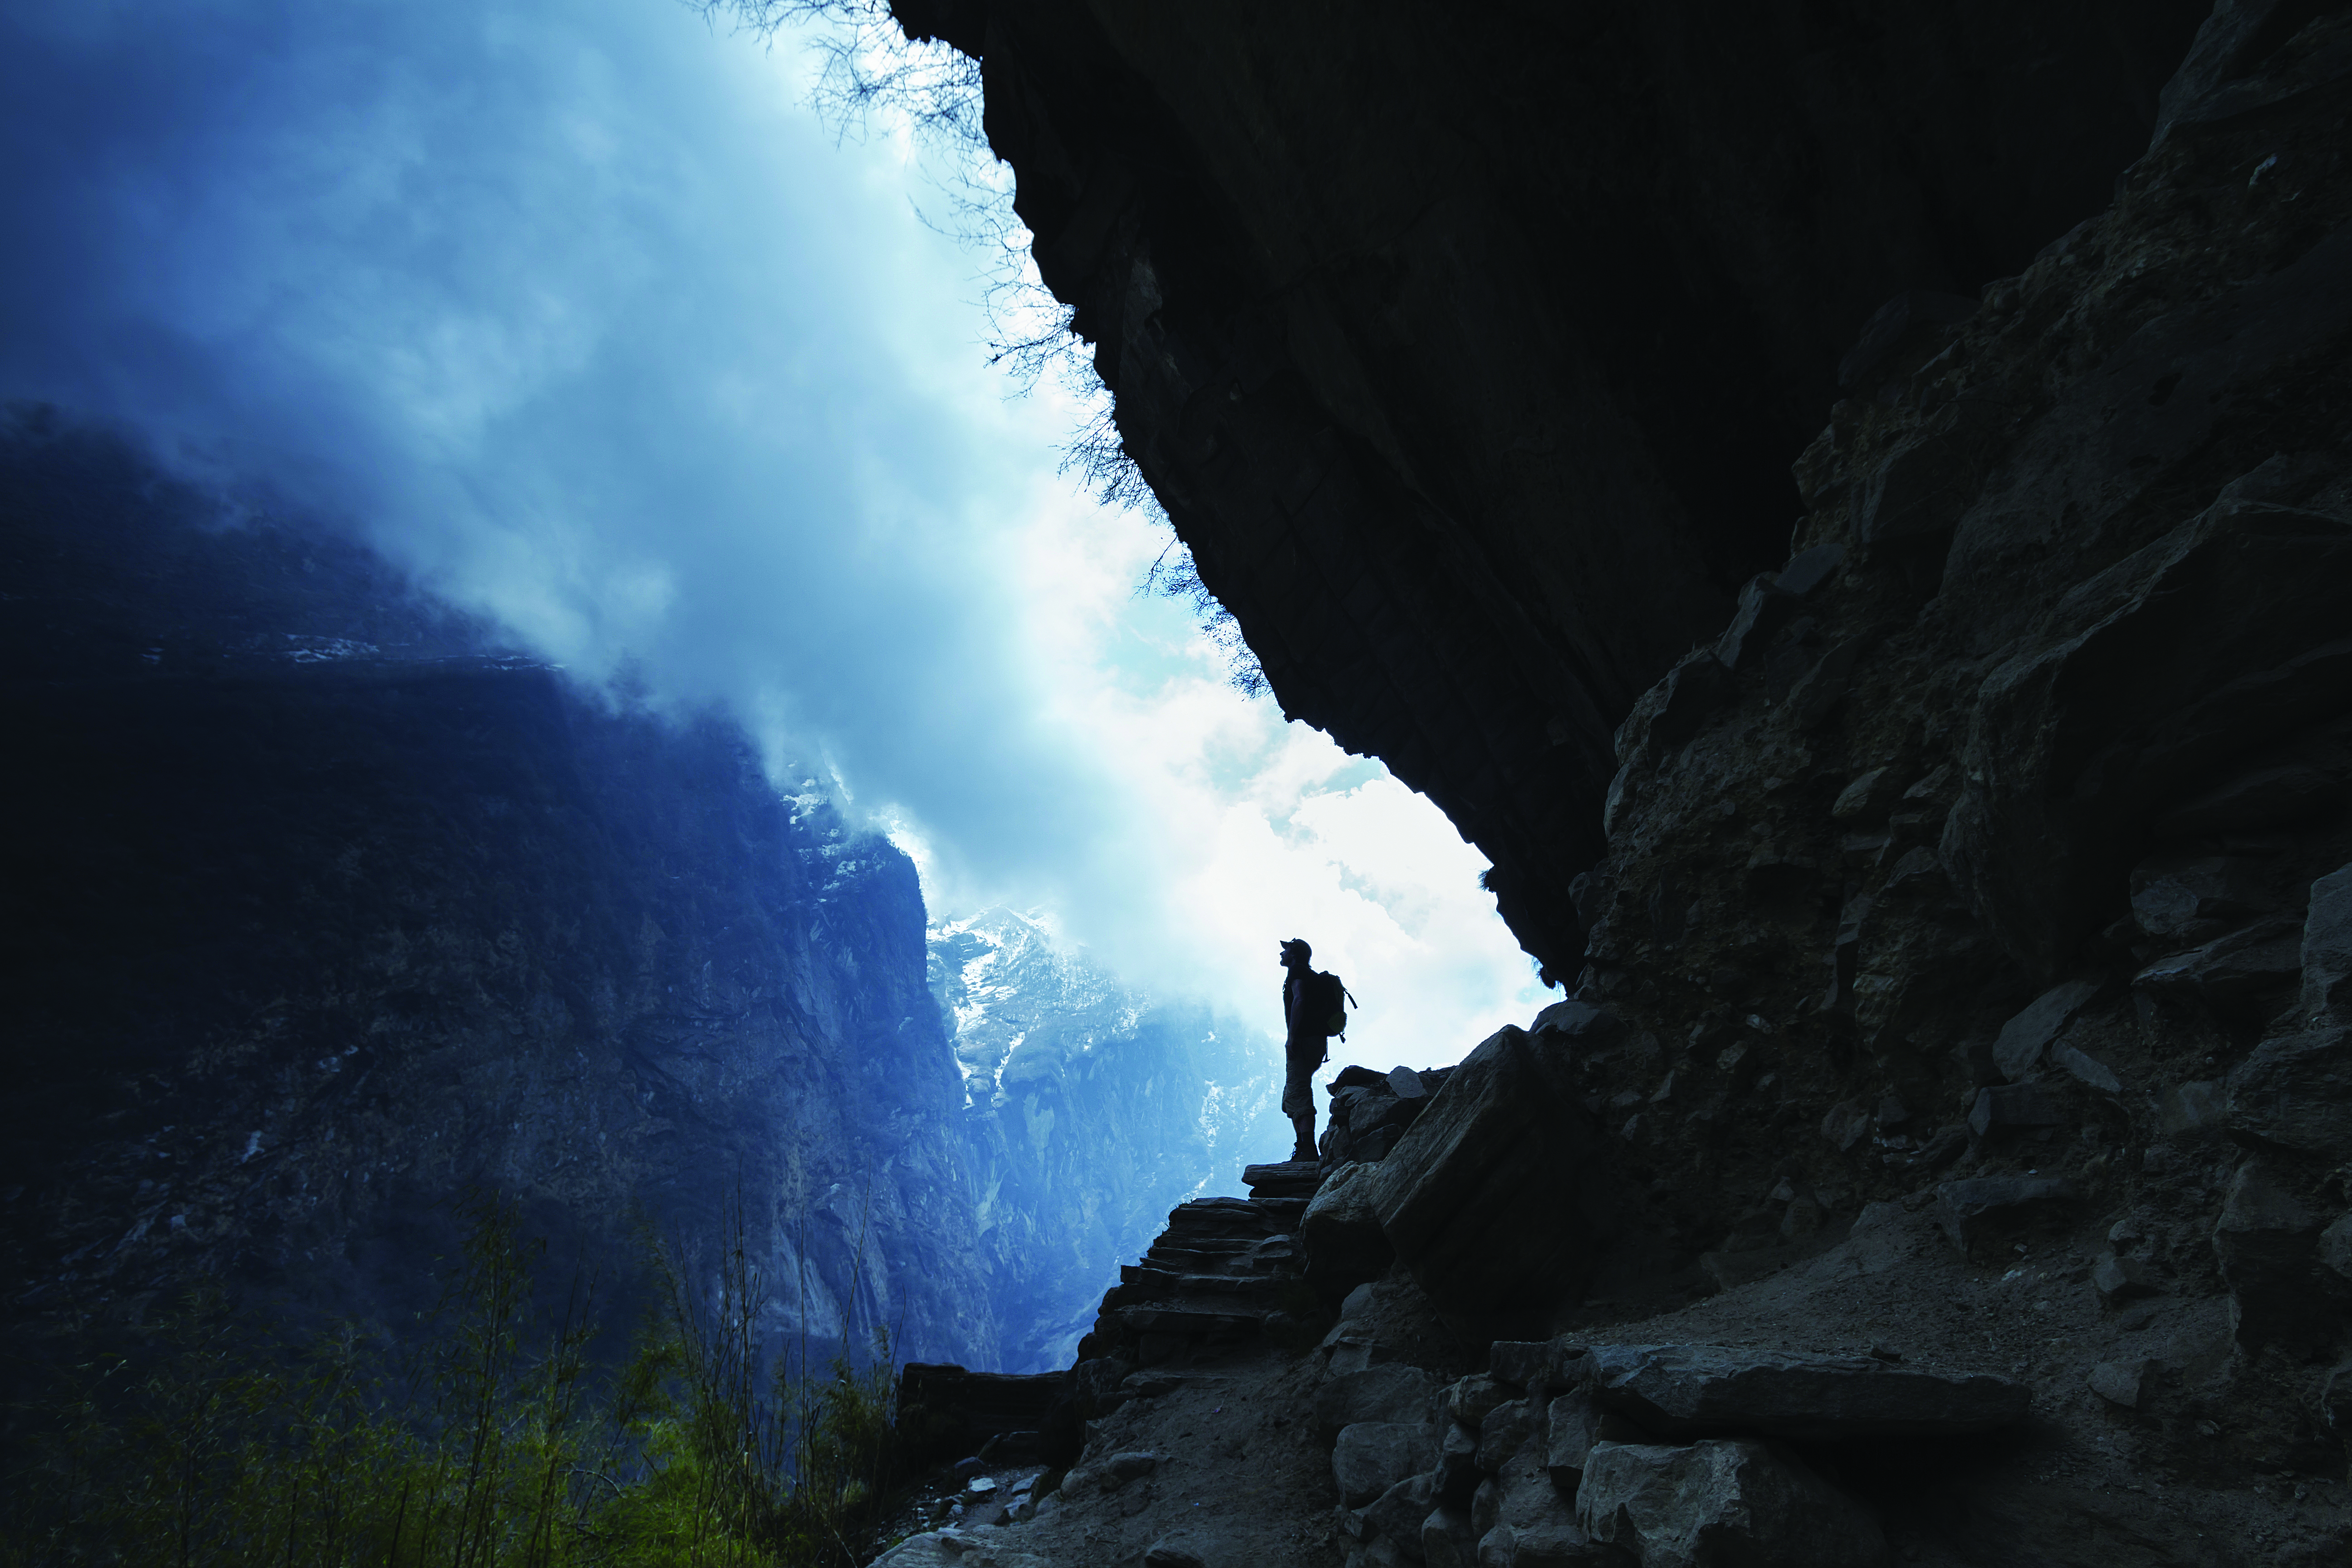 Trekker watching storm clouds move into a valley (Picturegarden/Getty Images)